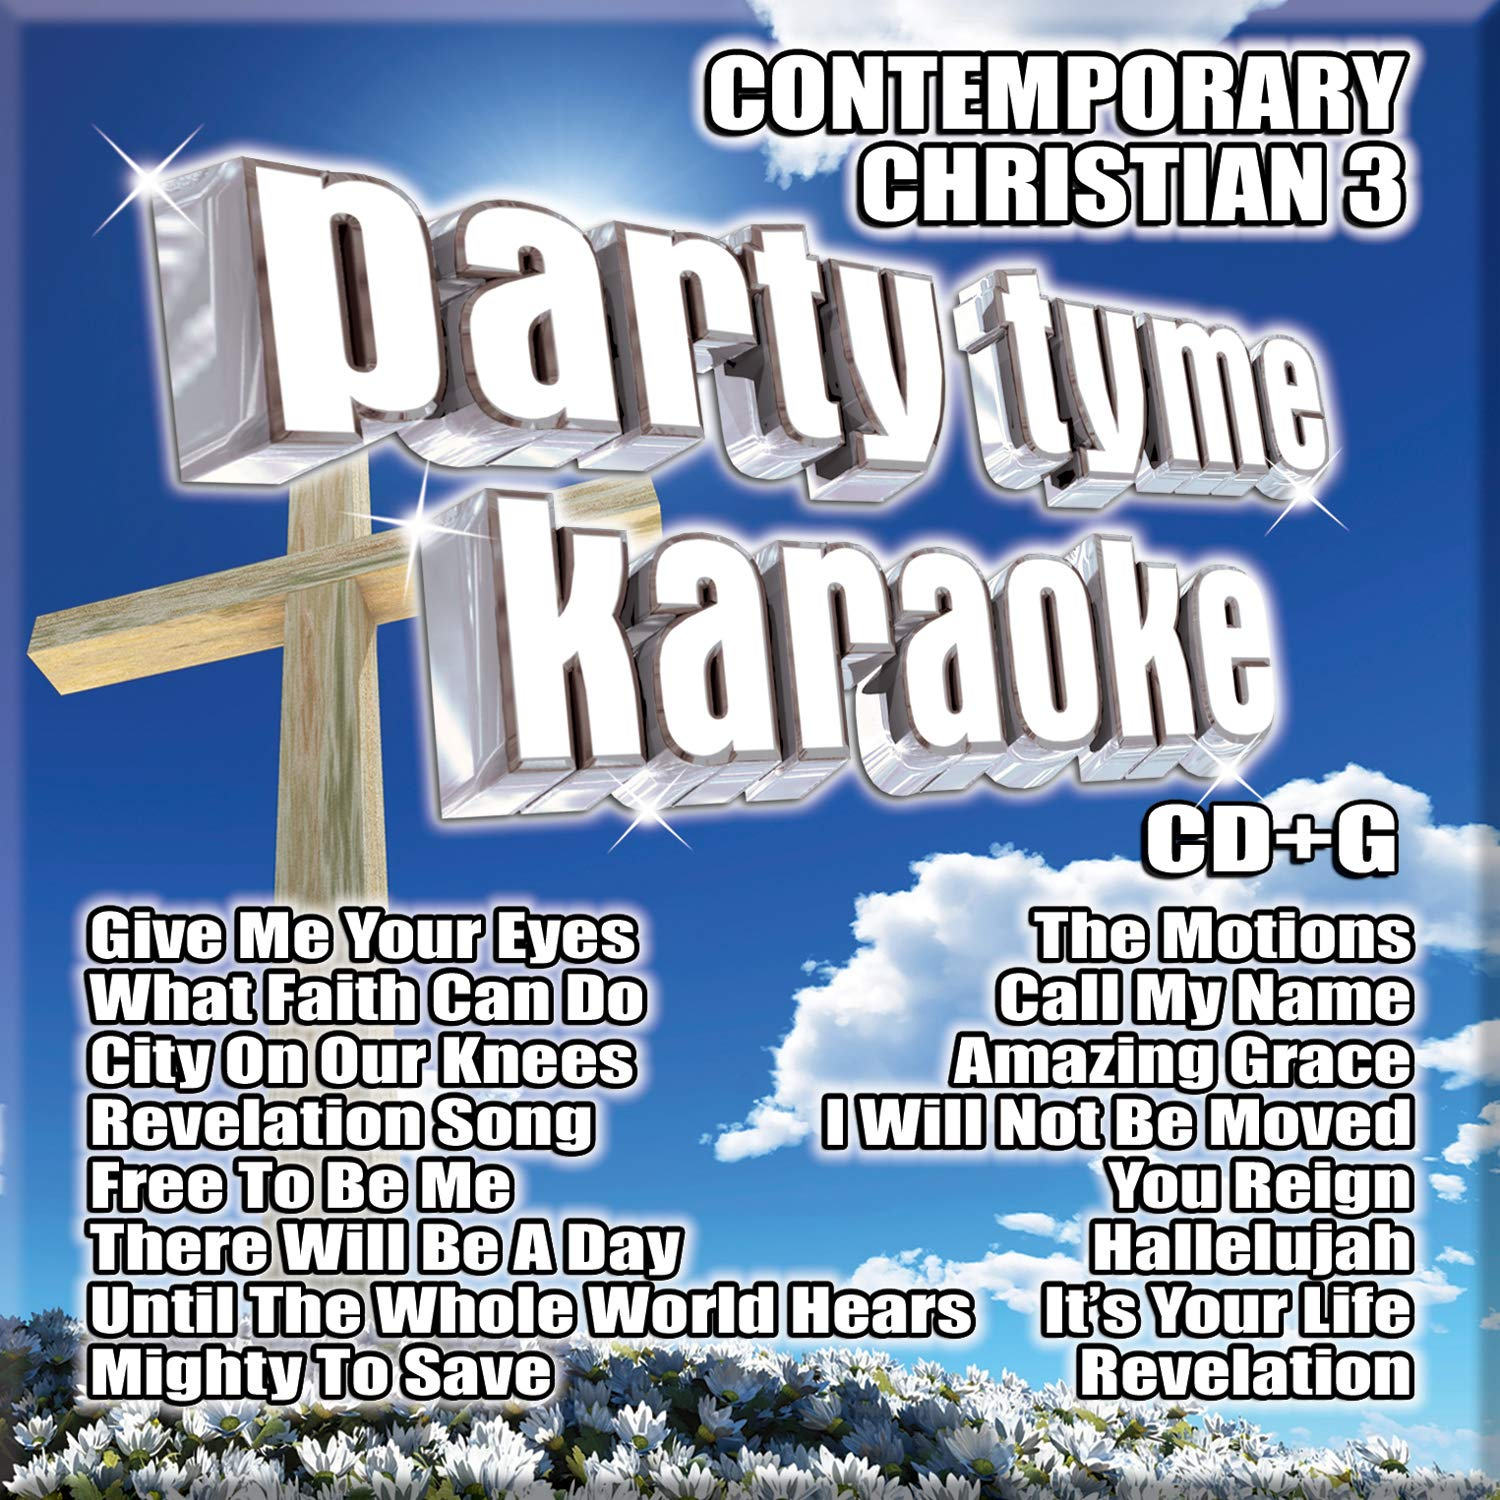 Party Tyme Karaoke - Contemporary Christian 3 (16-song CD+G) by Sybersound